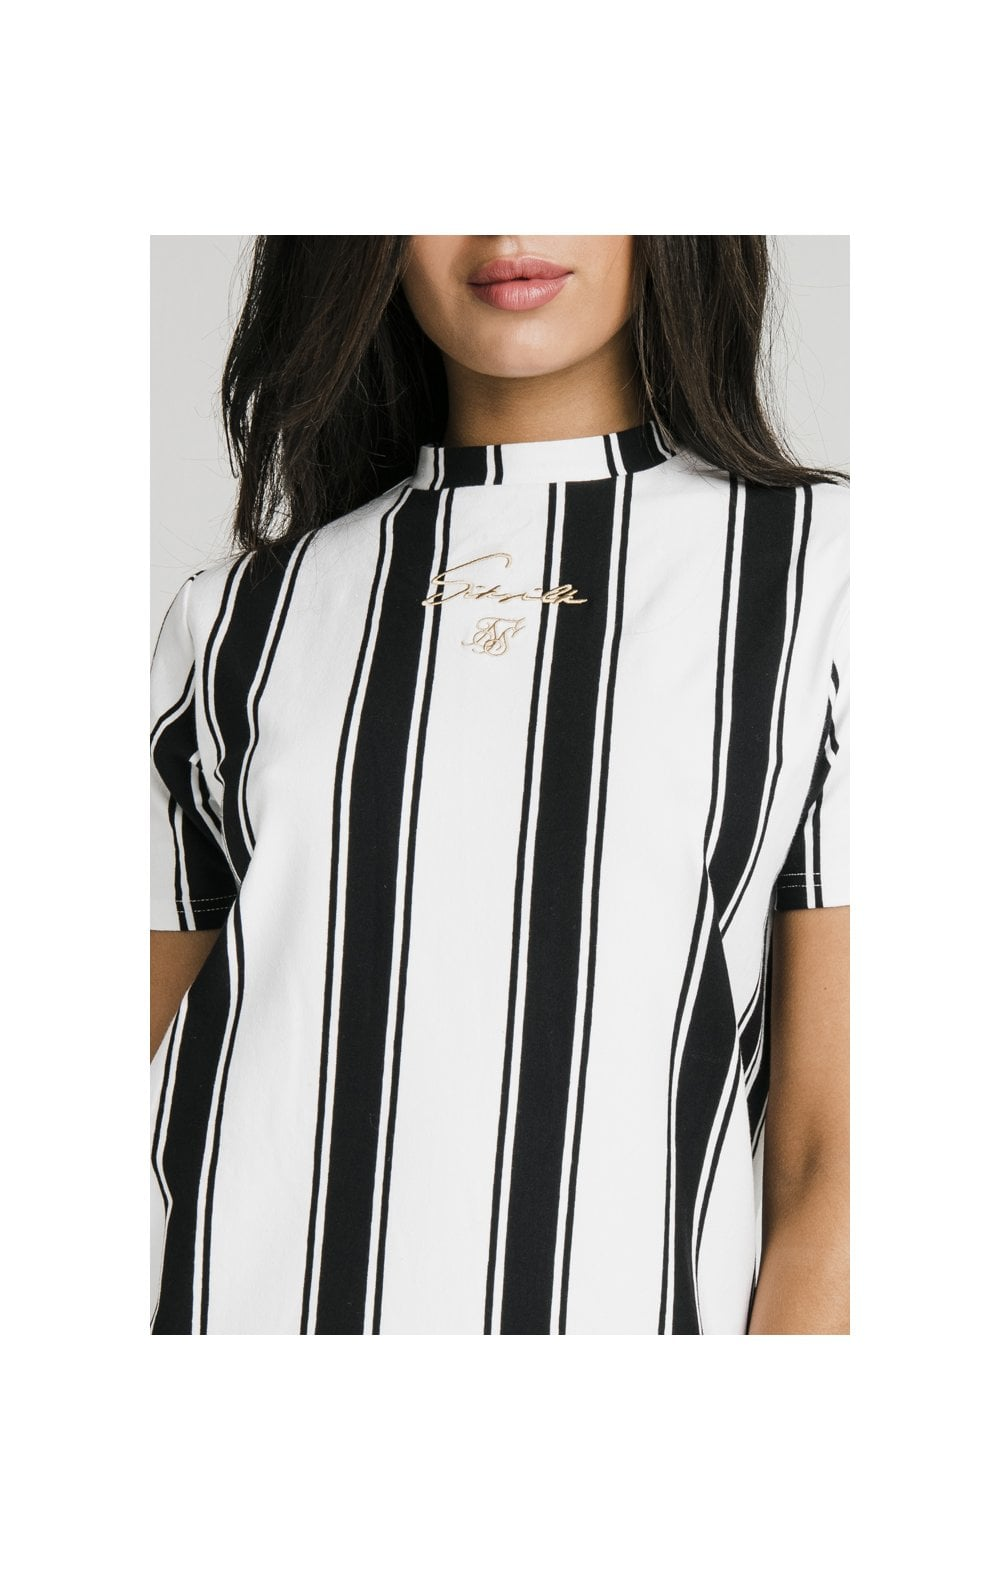 SikSilk Athena Stripe T-Shirt Dress - Black & White (1)